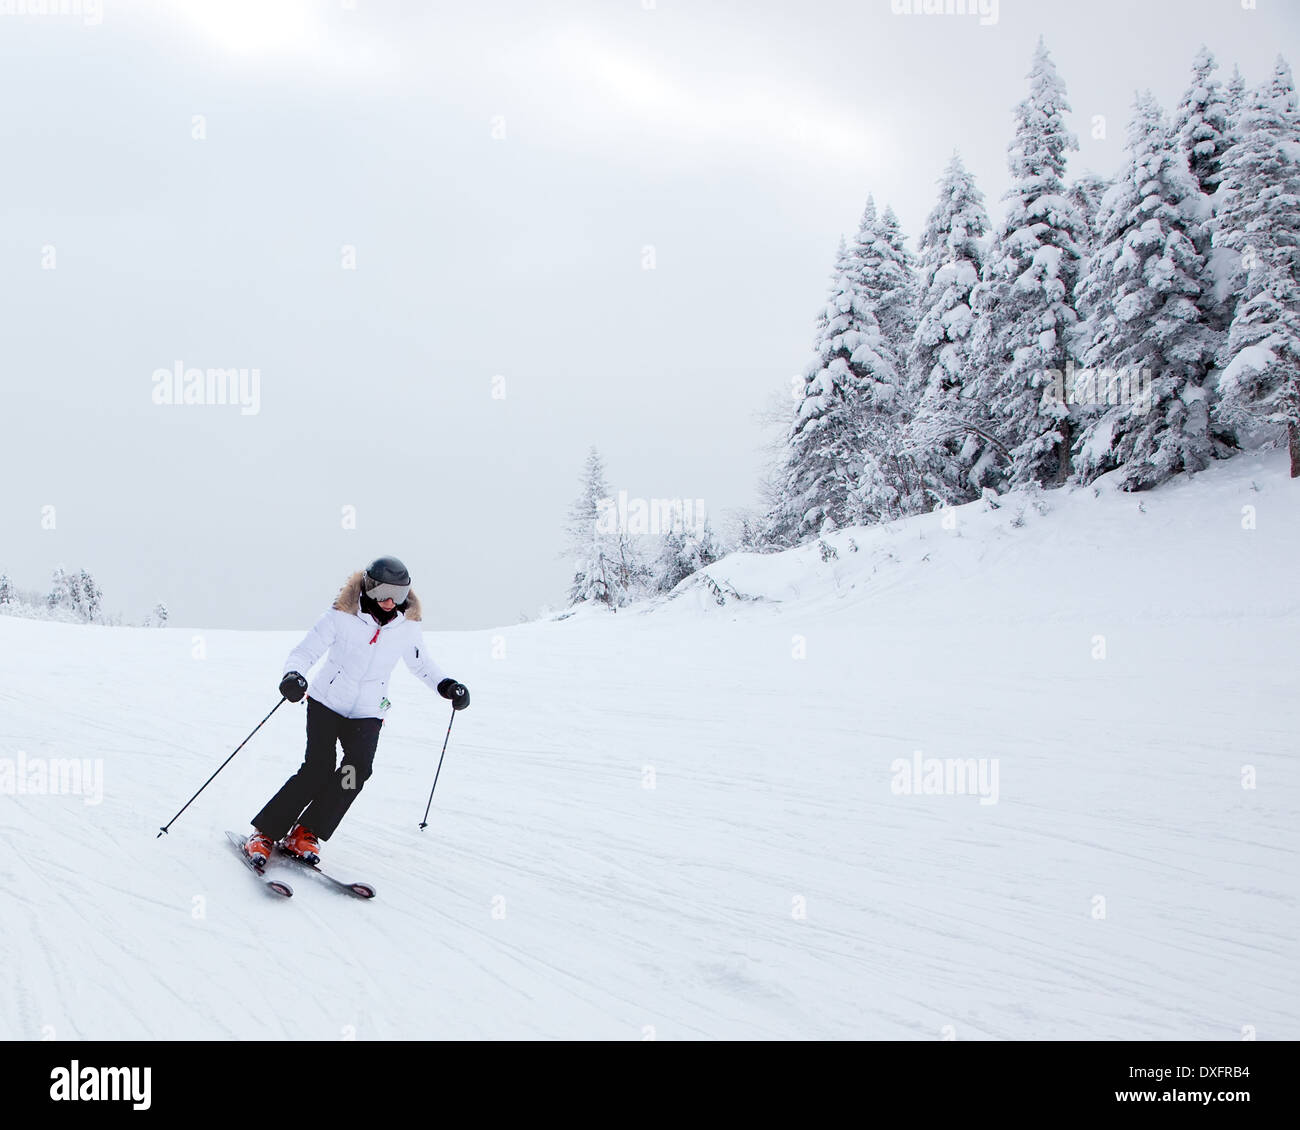 Mont-Tremblant , Quebec, Canada - February 9, 2014: A lonely skier is sliding down an easy slope at Mont-Tremblant Ski Resort. - Stock Image